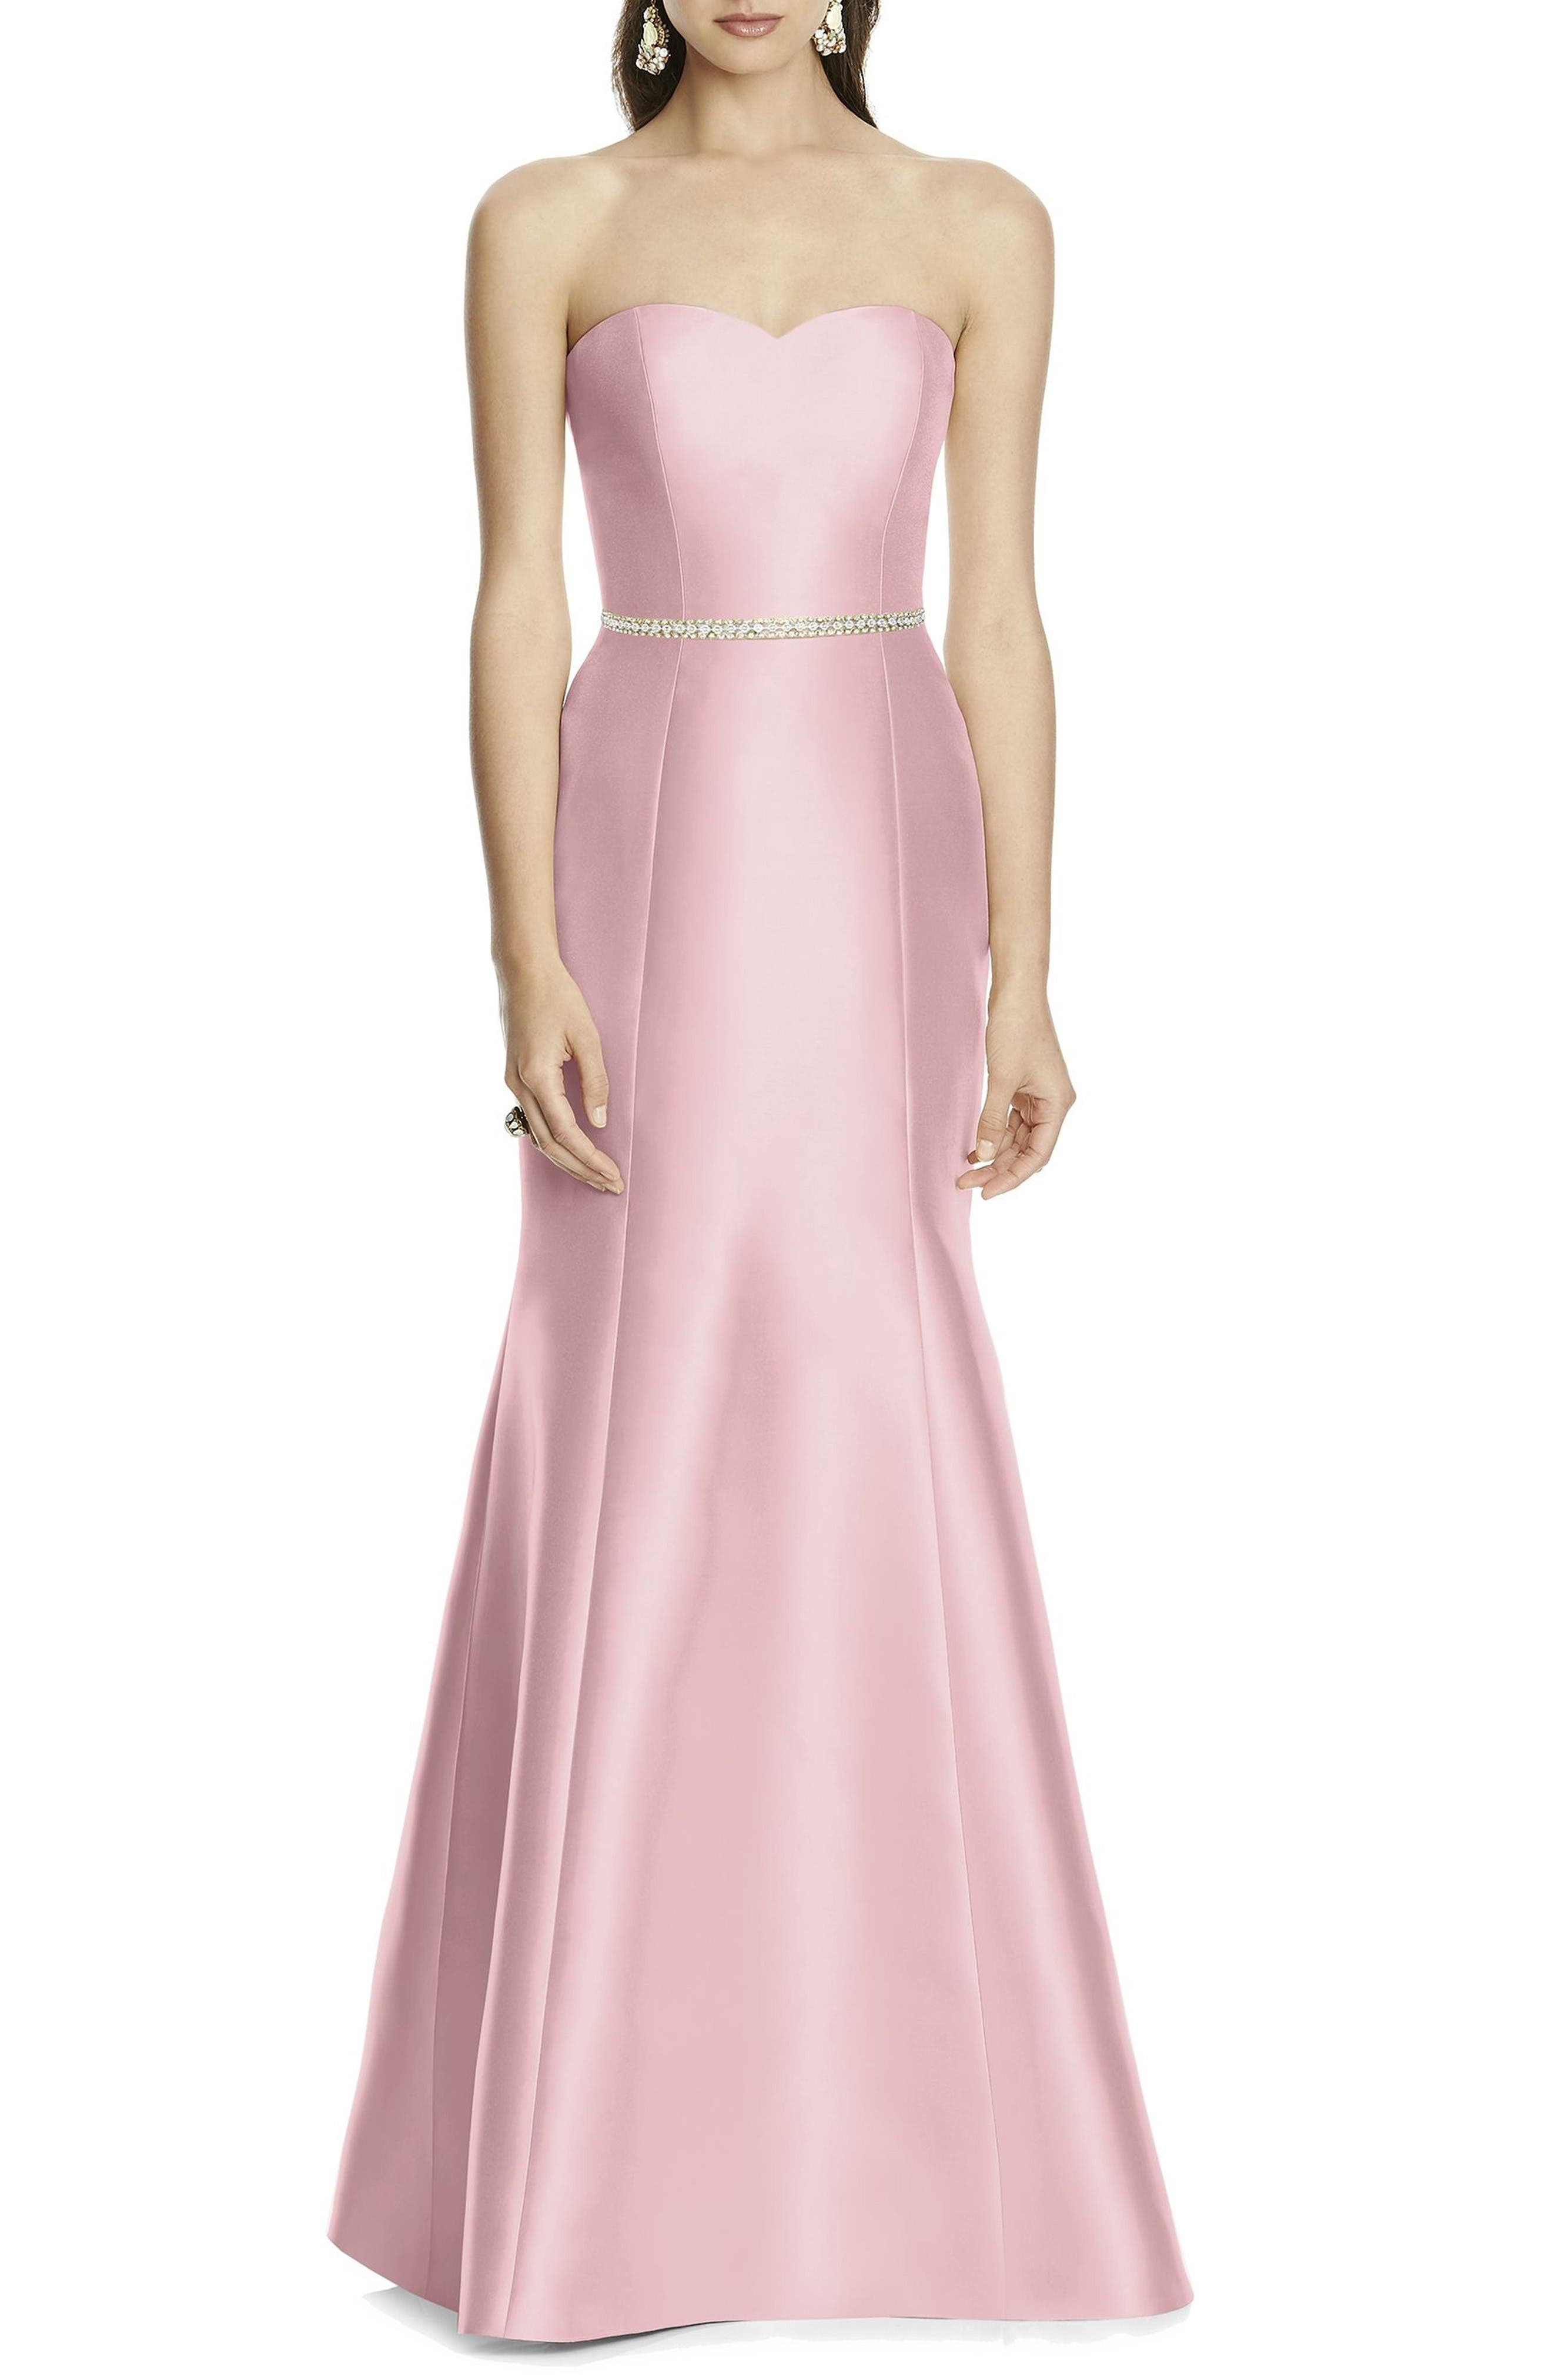 Alternate Image 1 Selected - Alfred Sung Strapless Sateen Trumpet Gown